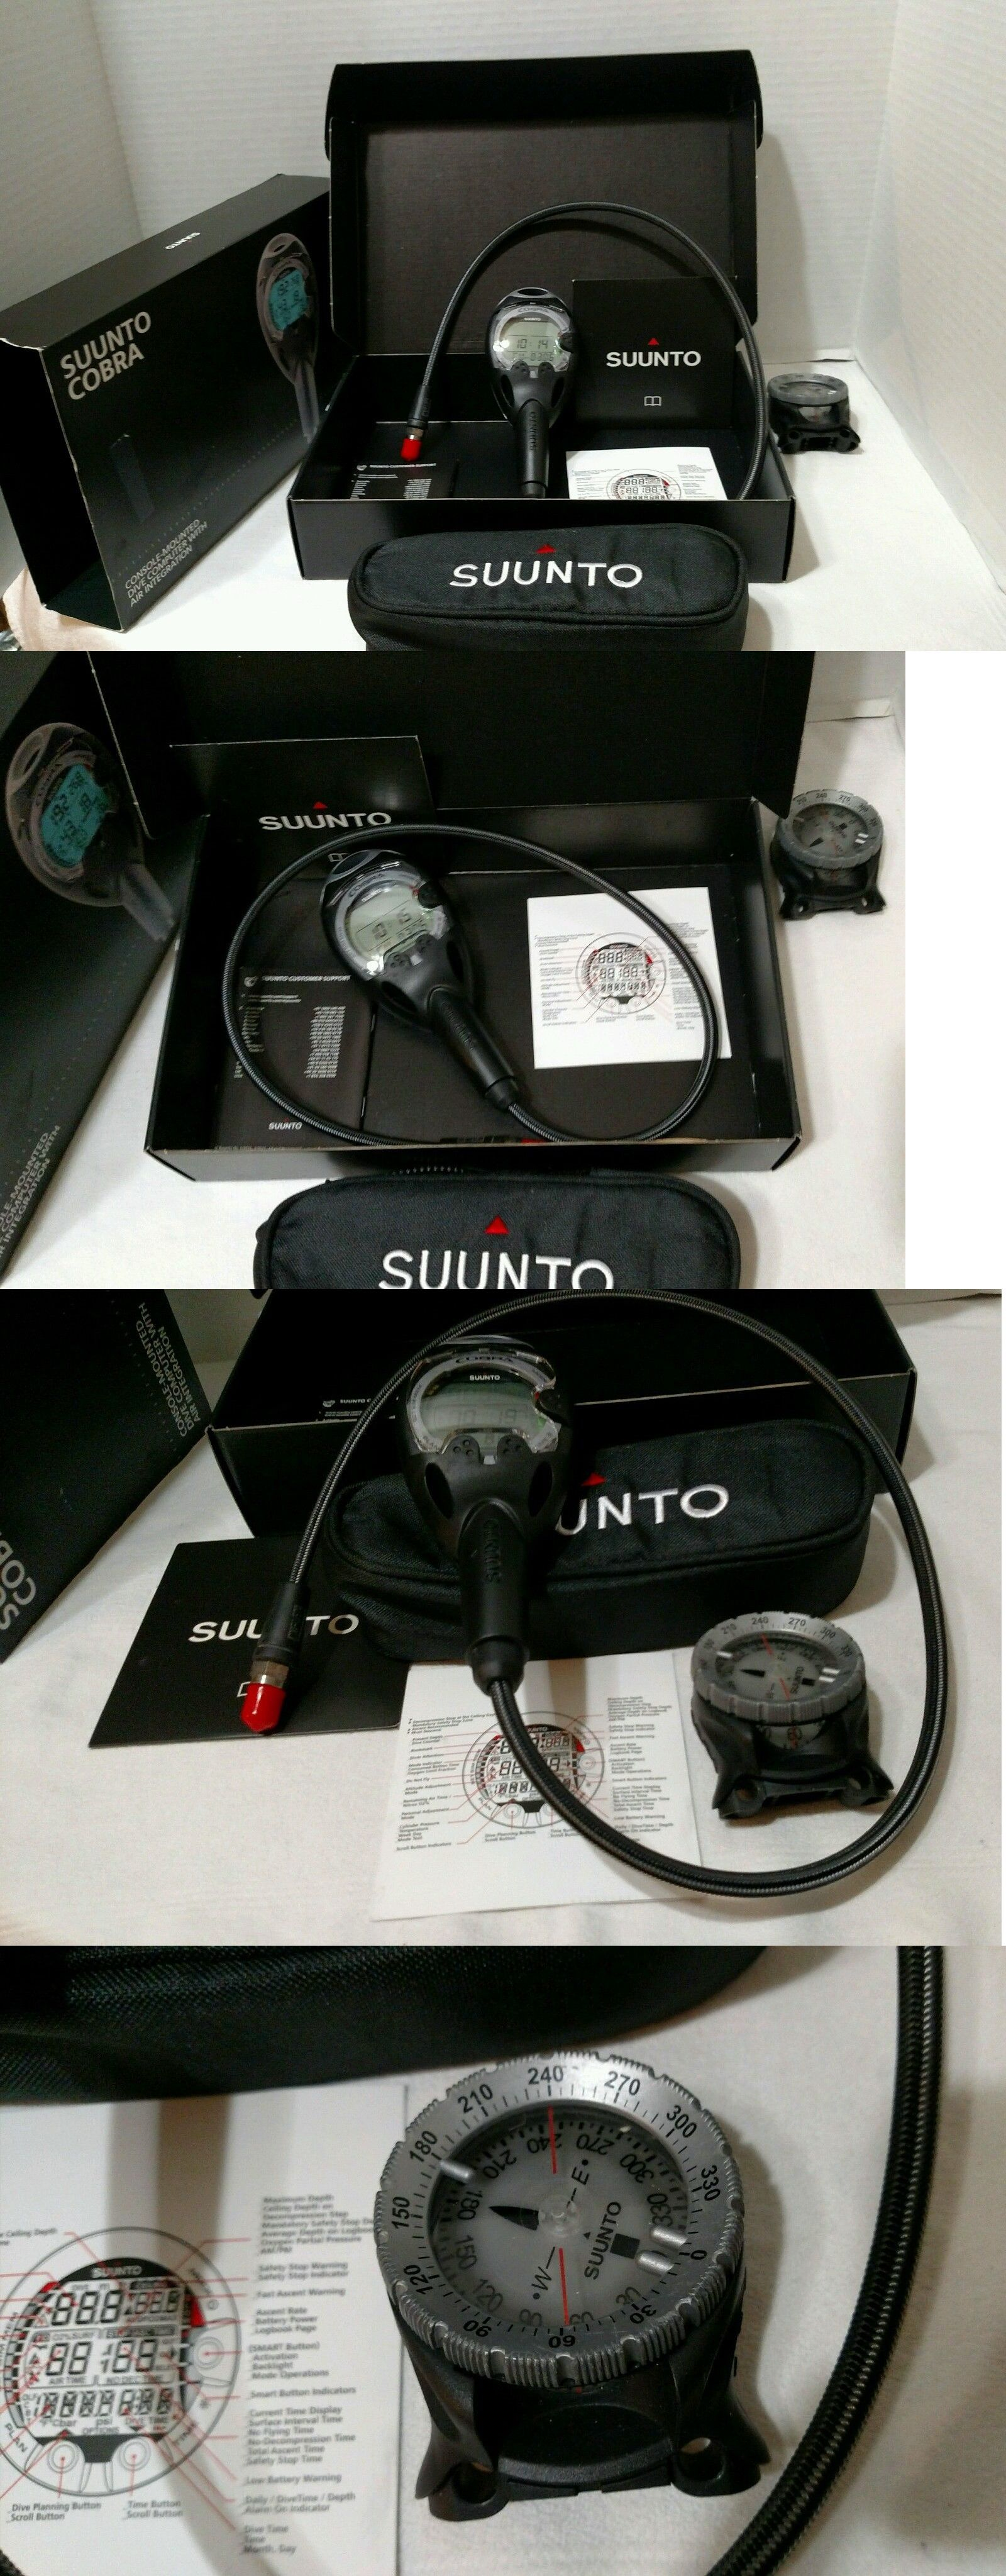 Dive Computers 50882 Suunto Cobra Dive Computer New In Box With Used Sk7 Compass Buy It Now Only 464 95 Dive Computers Suunto Best Scuba Diving